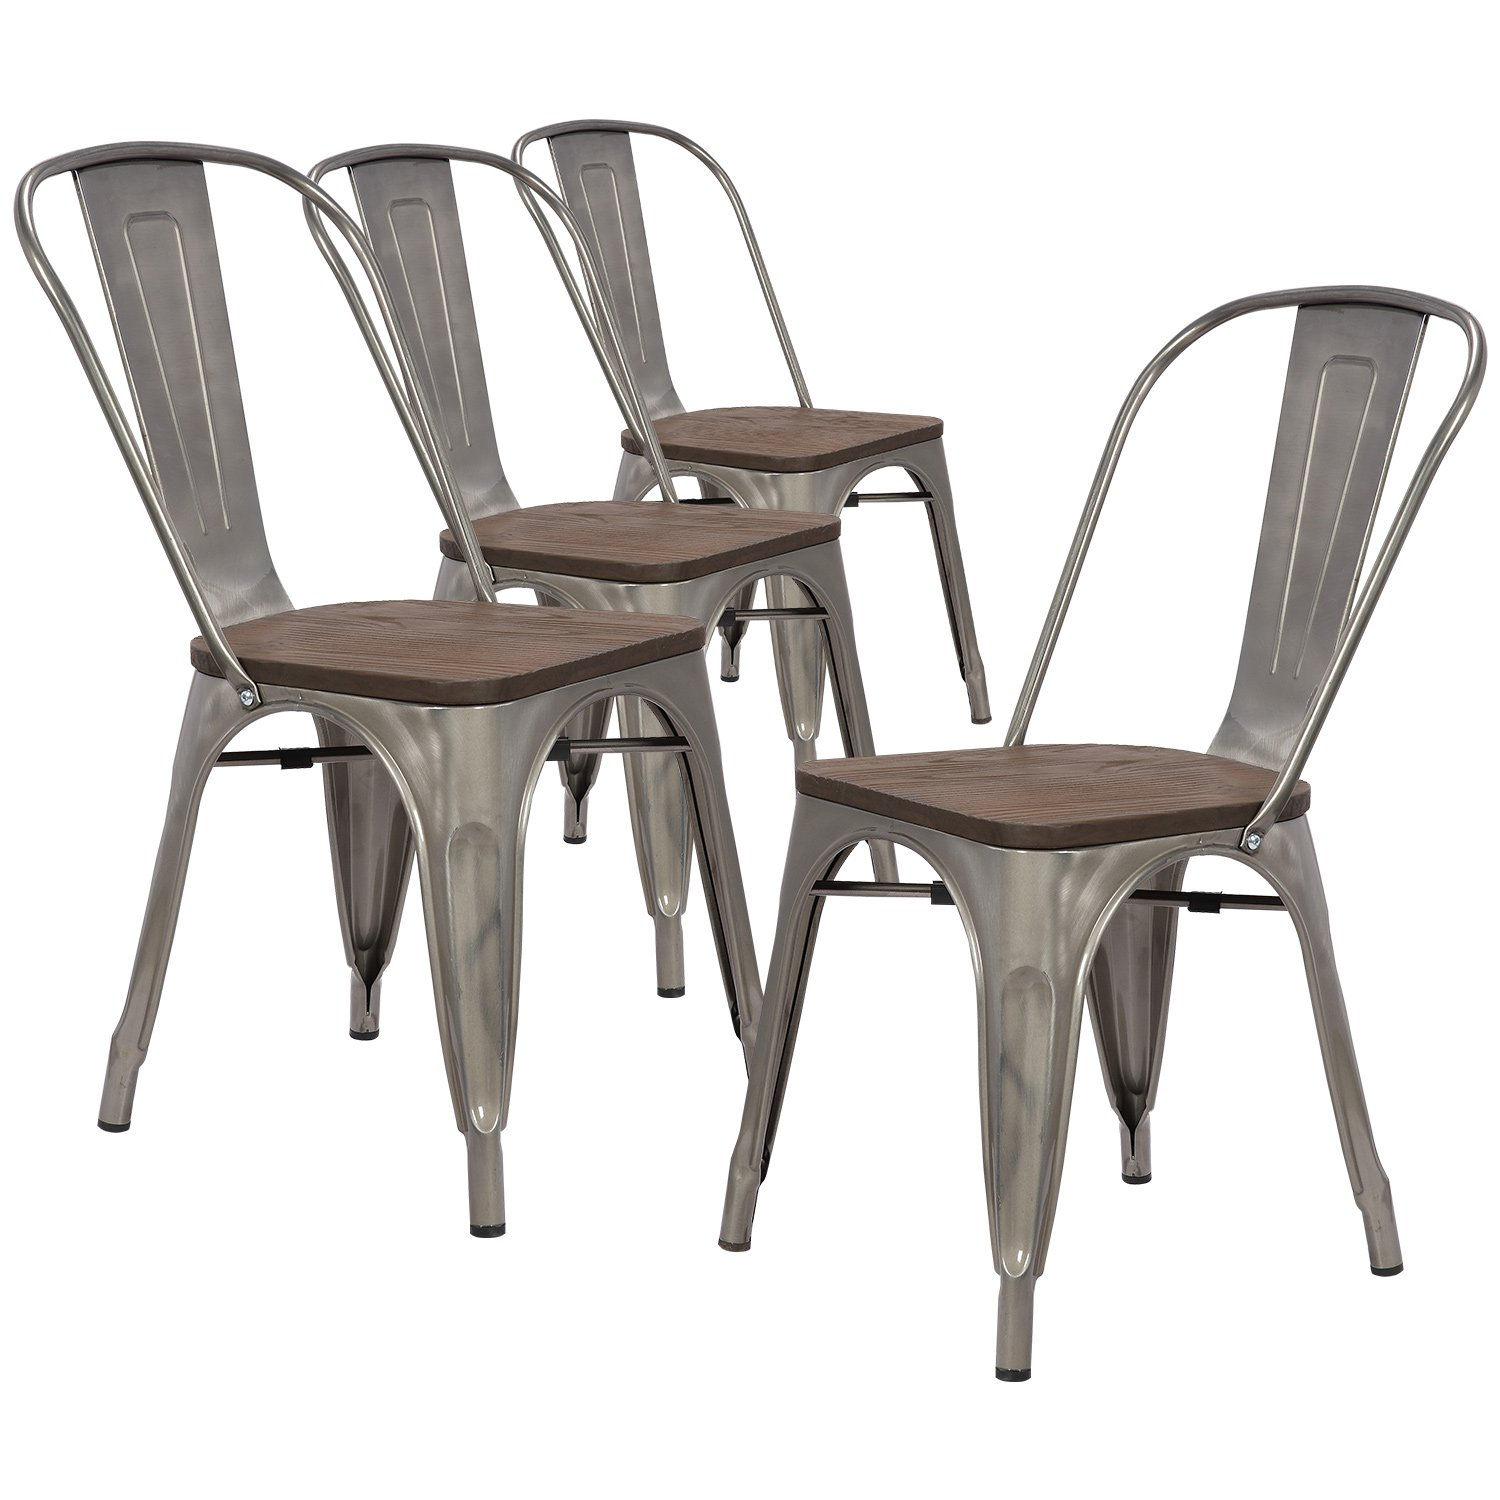 LCH Industrial Metal Wood Top Stackable Dining Chairs, Set of 4 Vintage Indoor/Outdoor Stackable Bistro Cafe Chairs with Back, Glossy Steel by LCH (Image #1)